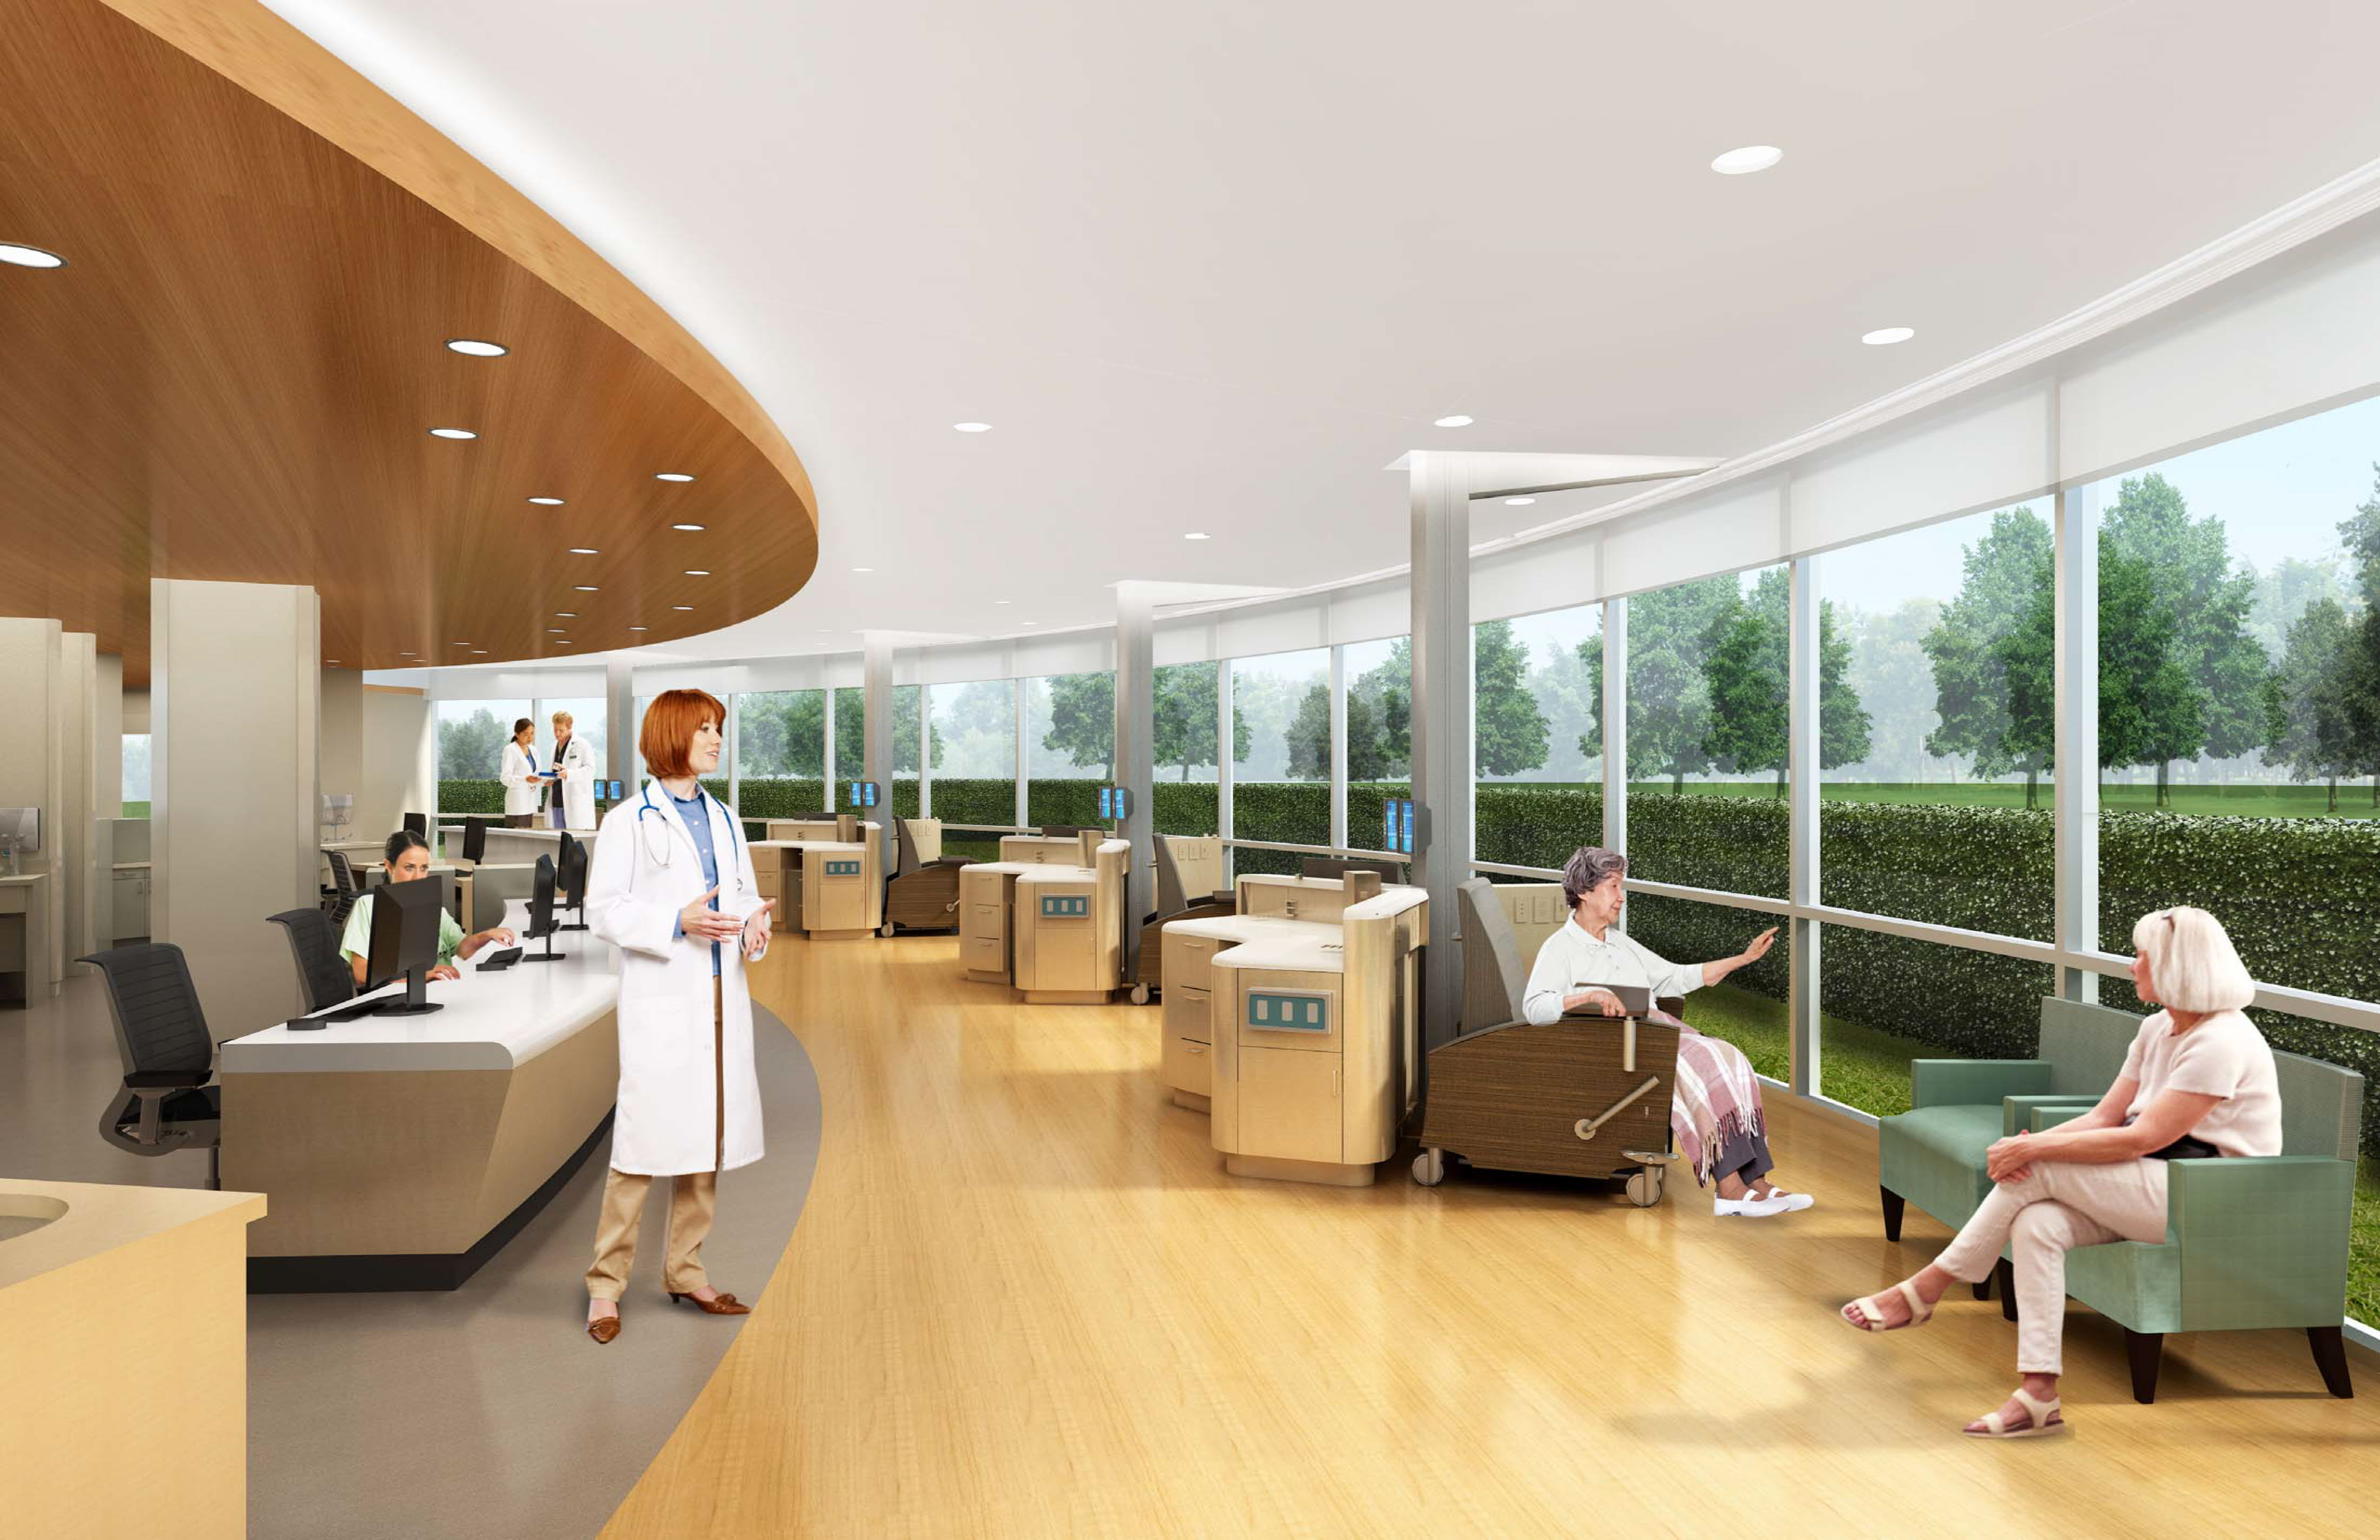 A rendering detailing the new cancer center at Ocean Medical Center. (Credit: Meridian Health)